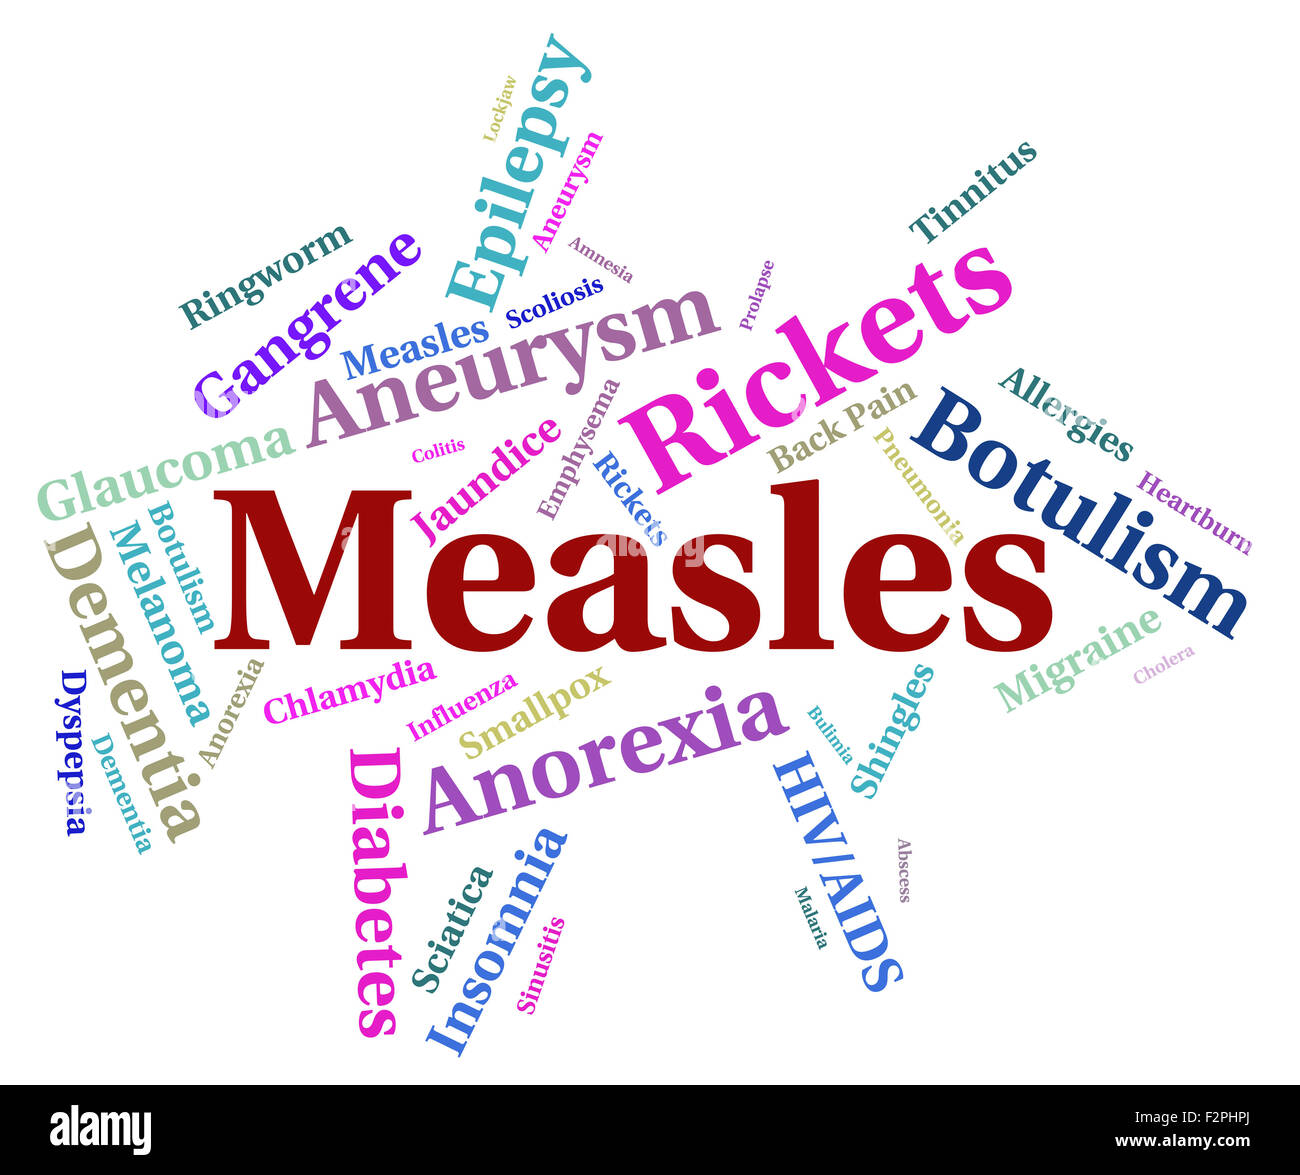 Measles Illness Meaning Poor Health And Complaint - Stock Image